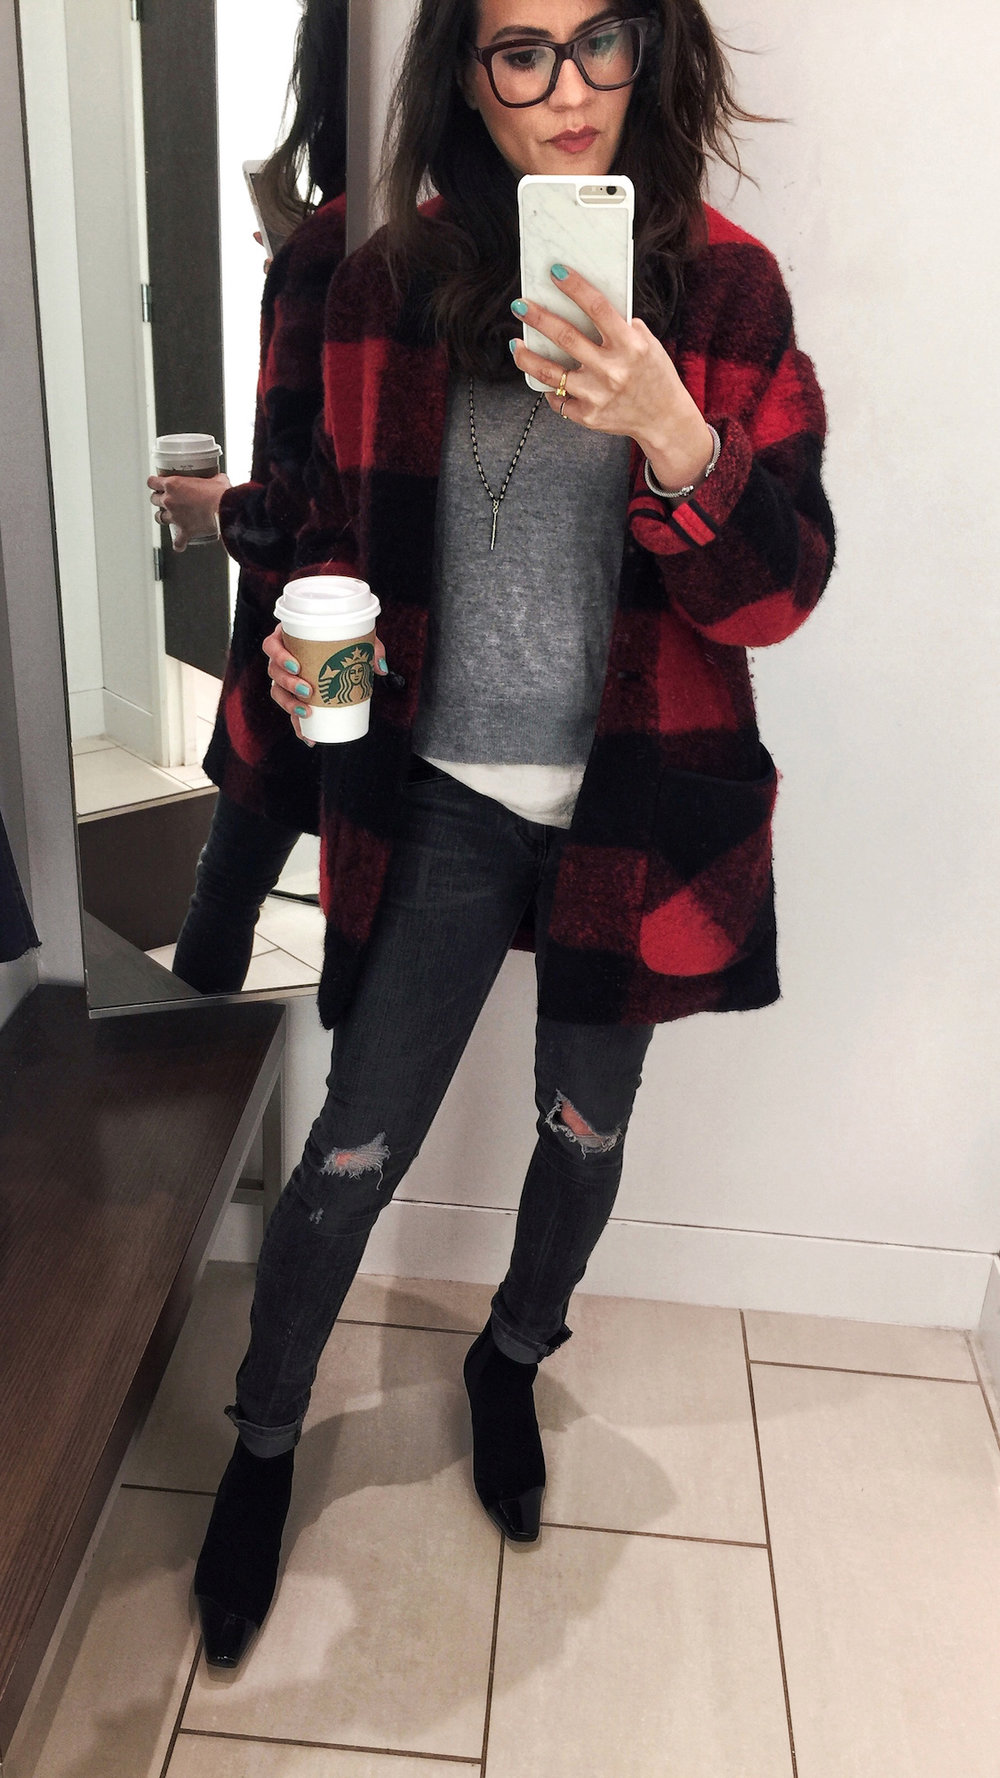 woahstyle.com - 365 outfits - day 7 spring 2018 - loewe velvet patent leather kitten heel boots, aritzia red plaid coat, french style, nathalie martin 7.jpg